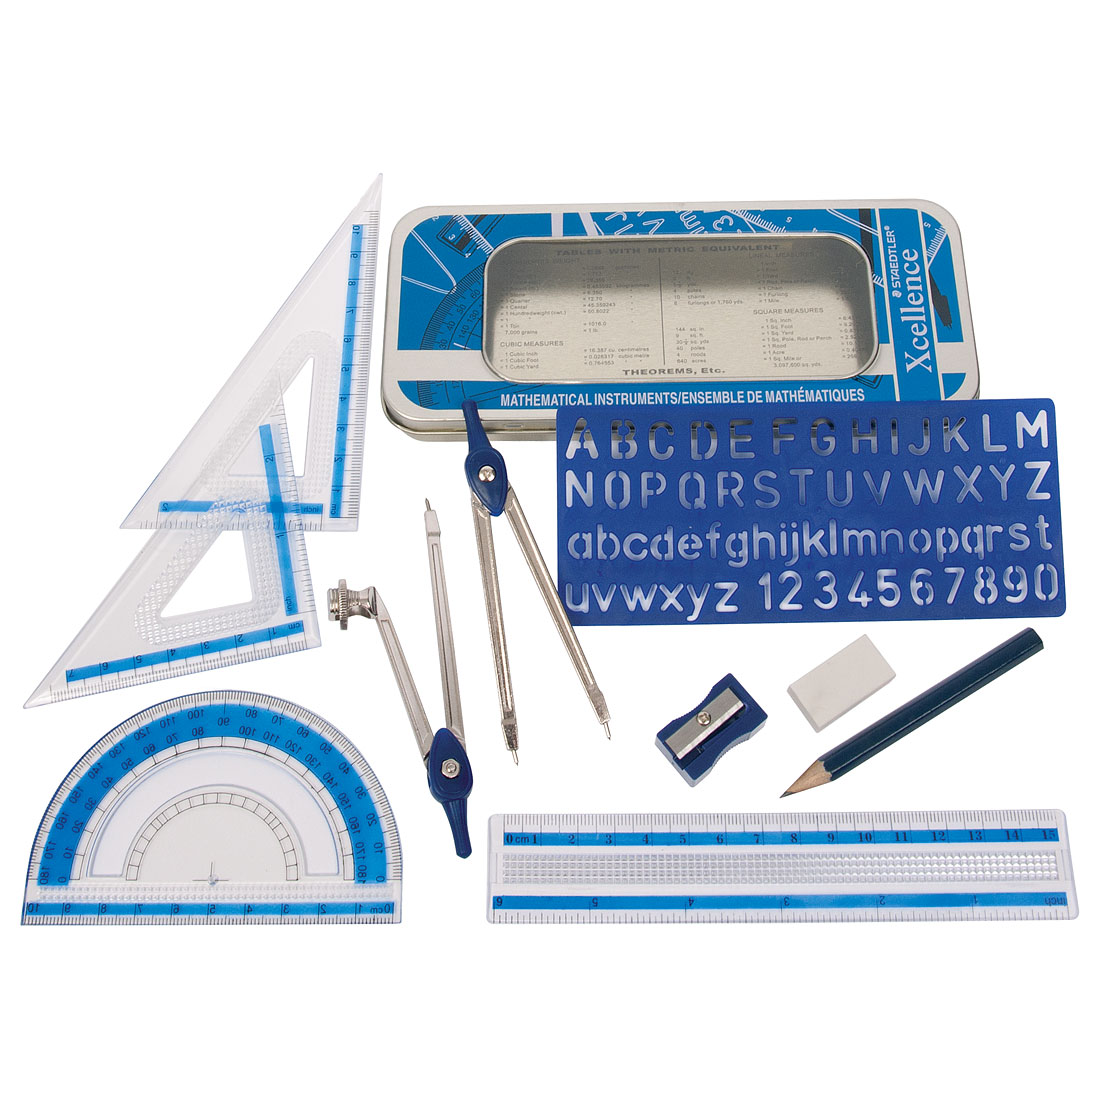 Opinions on mathematical instrument for Place setting images